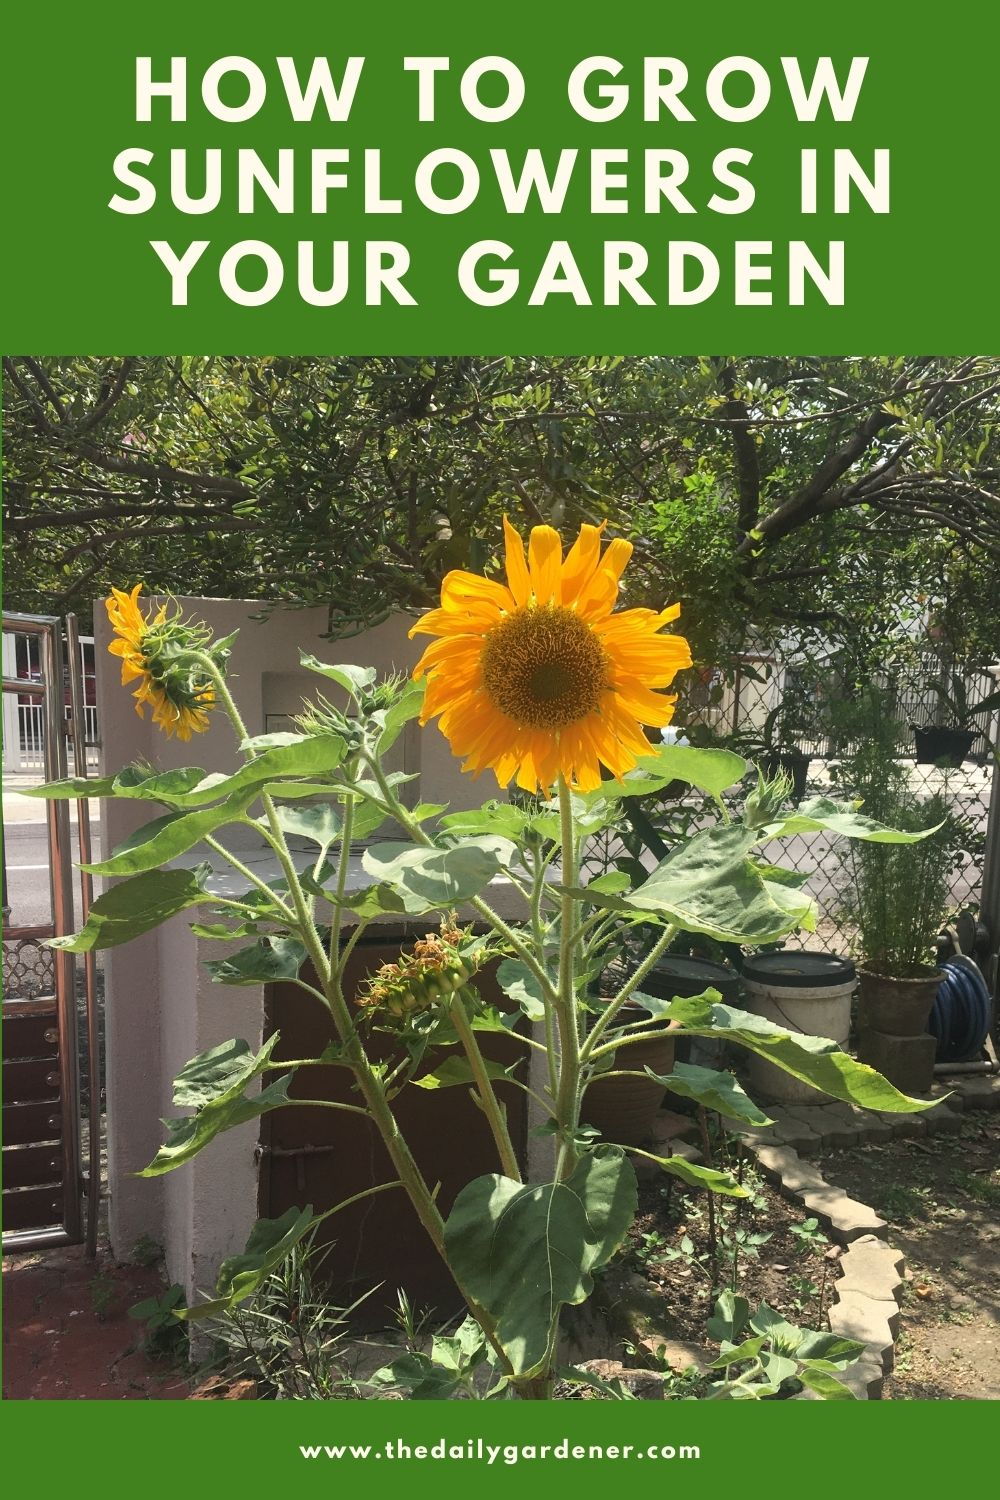 How to Grow Sunflowers in Your Garden 2